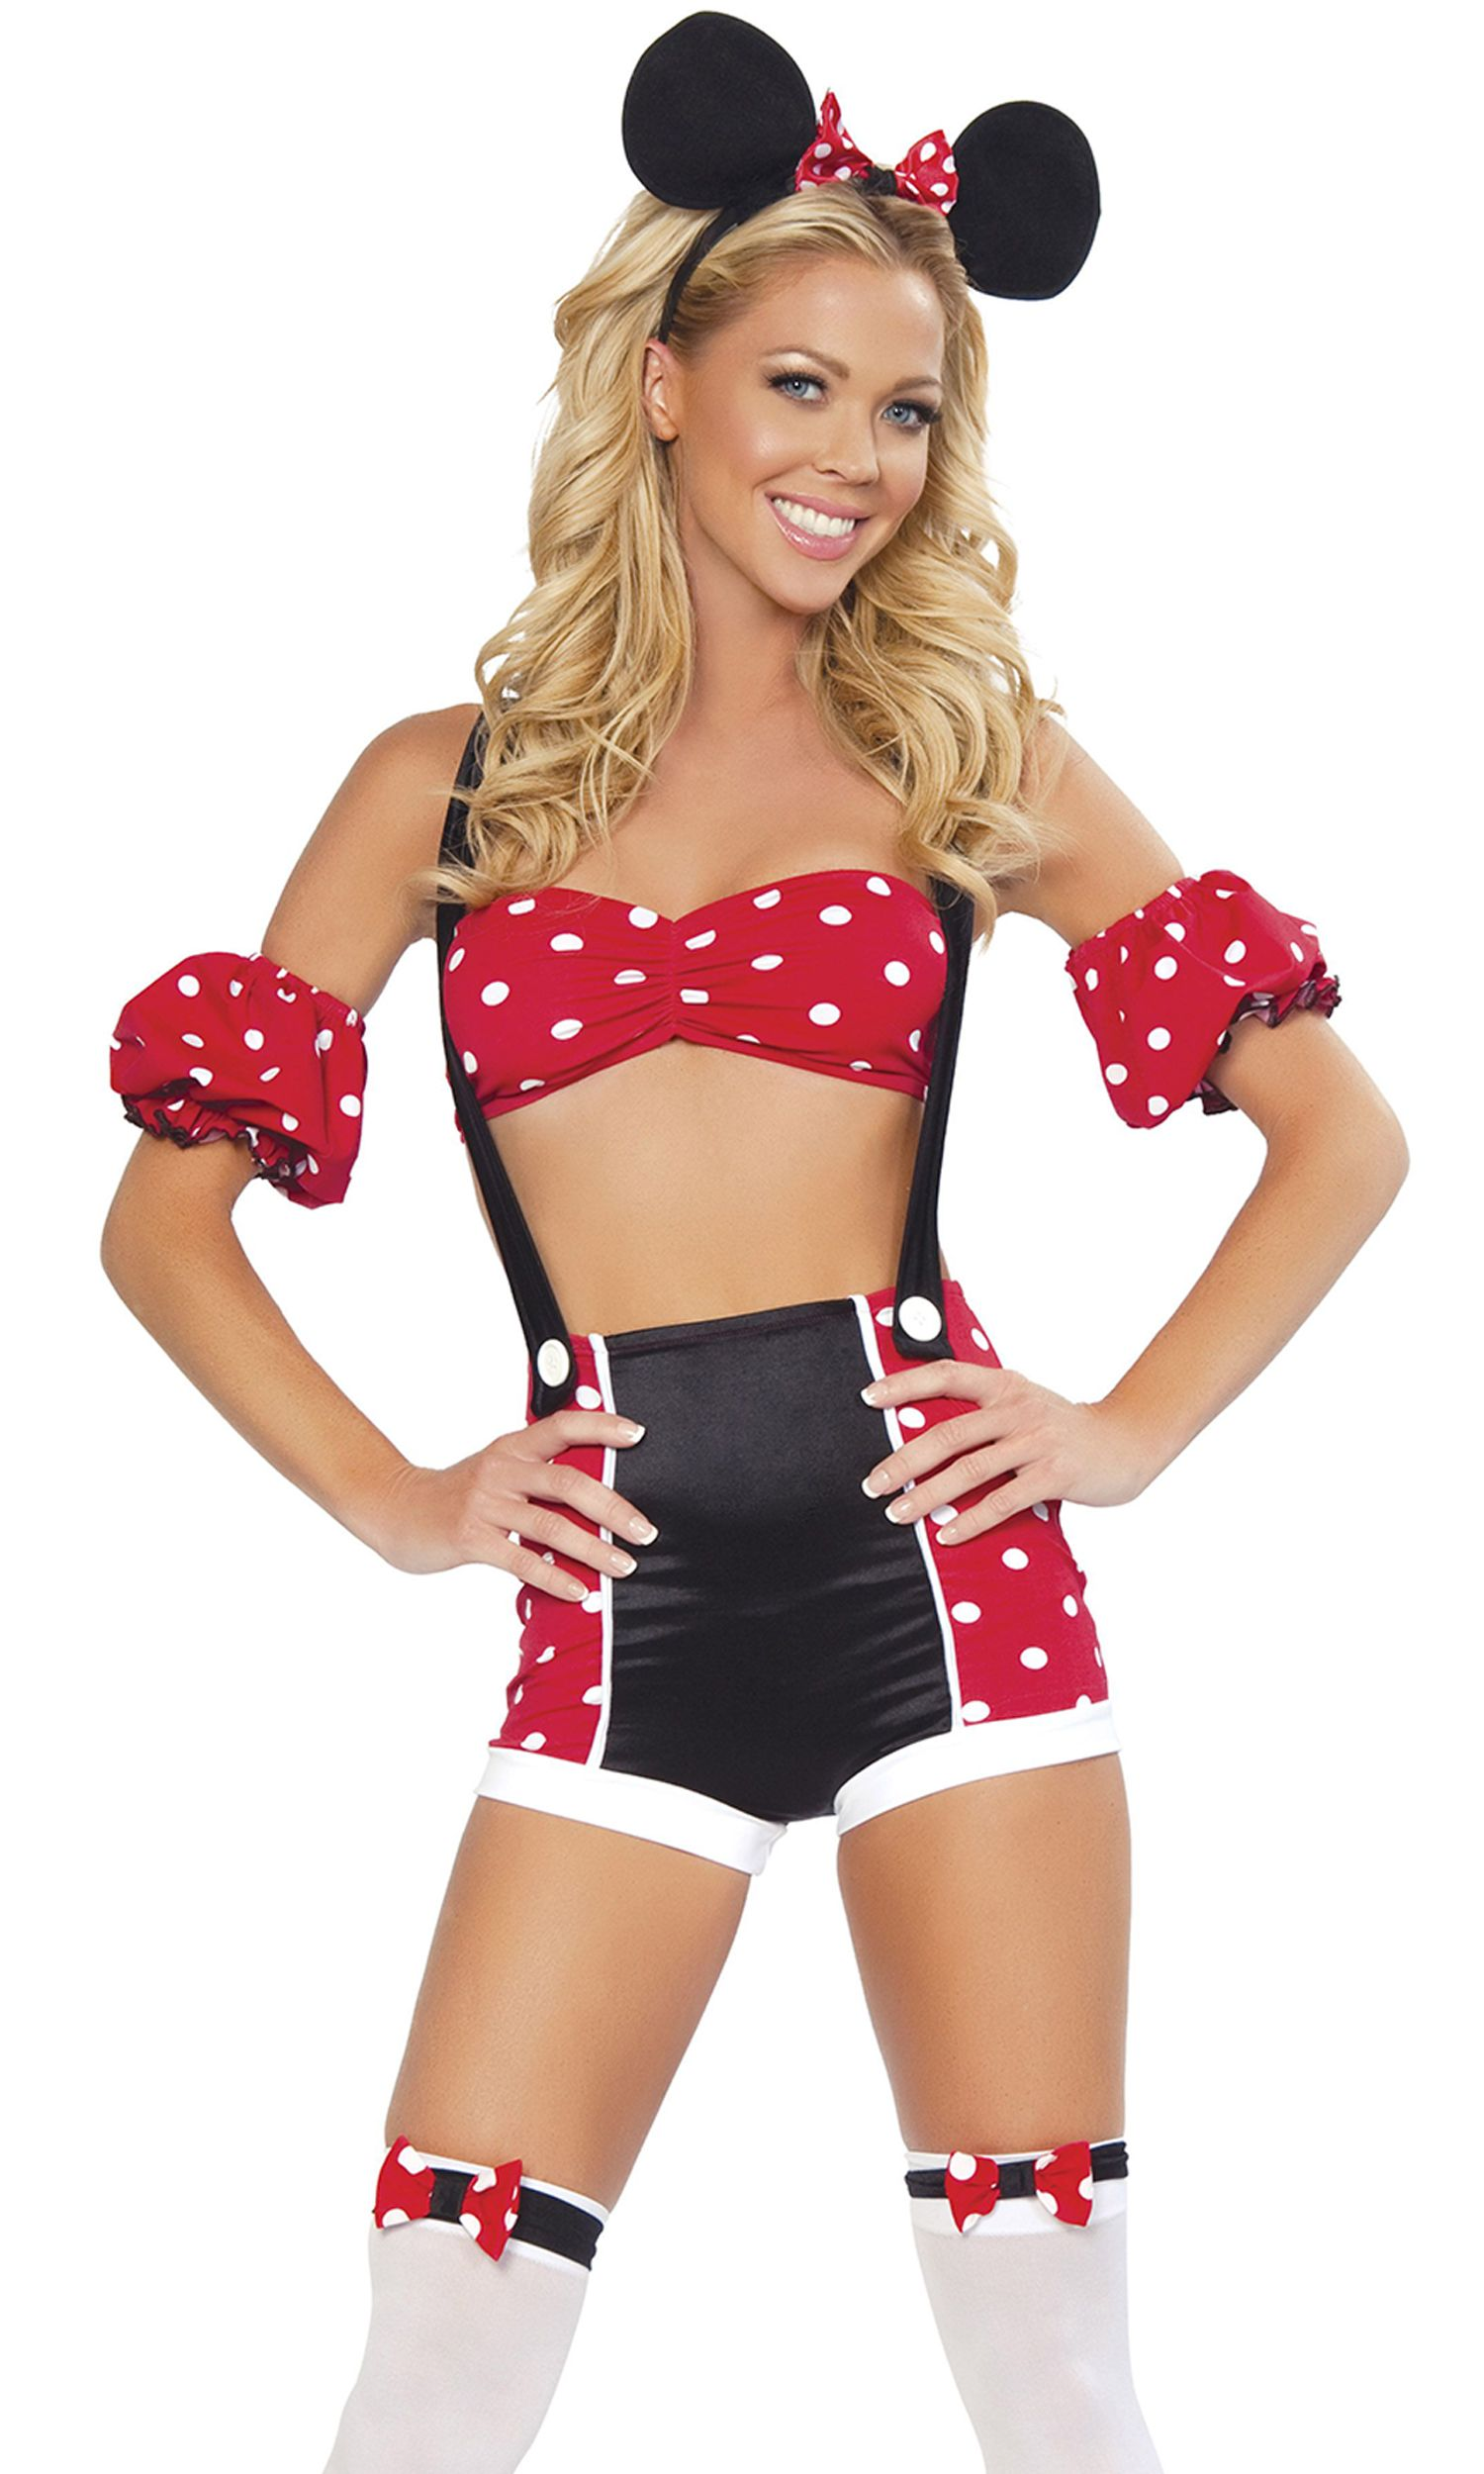 Forplay womens adult Mickey Mouse romper costume